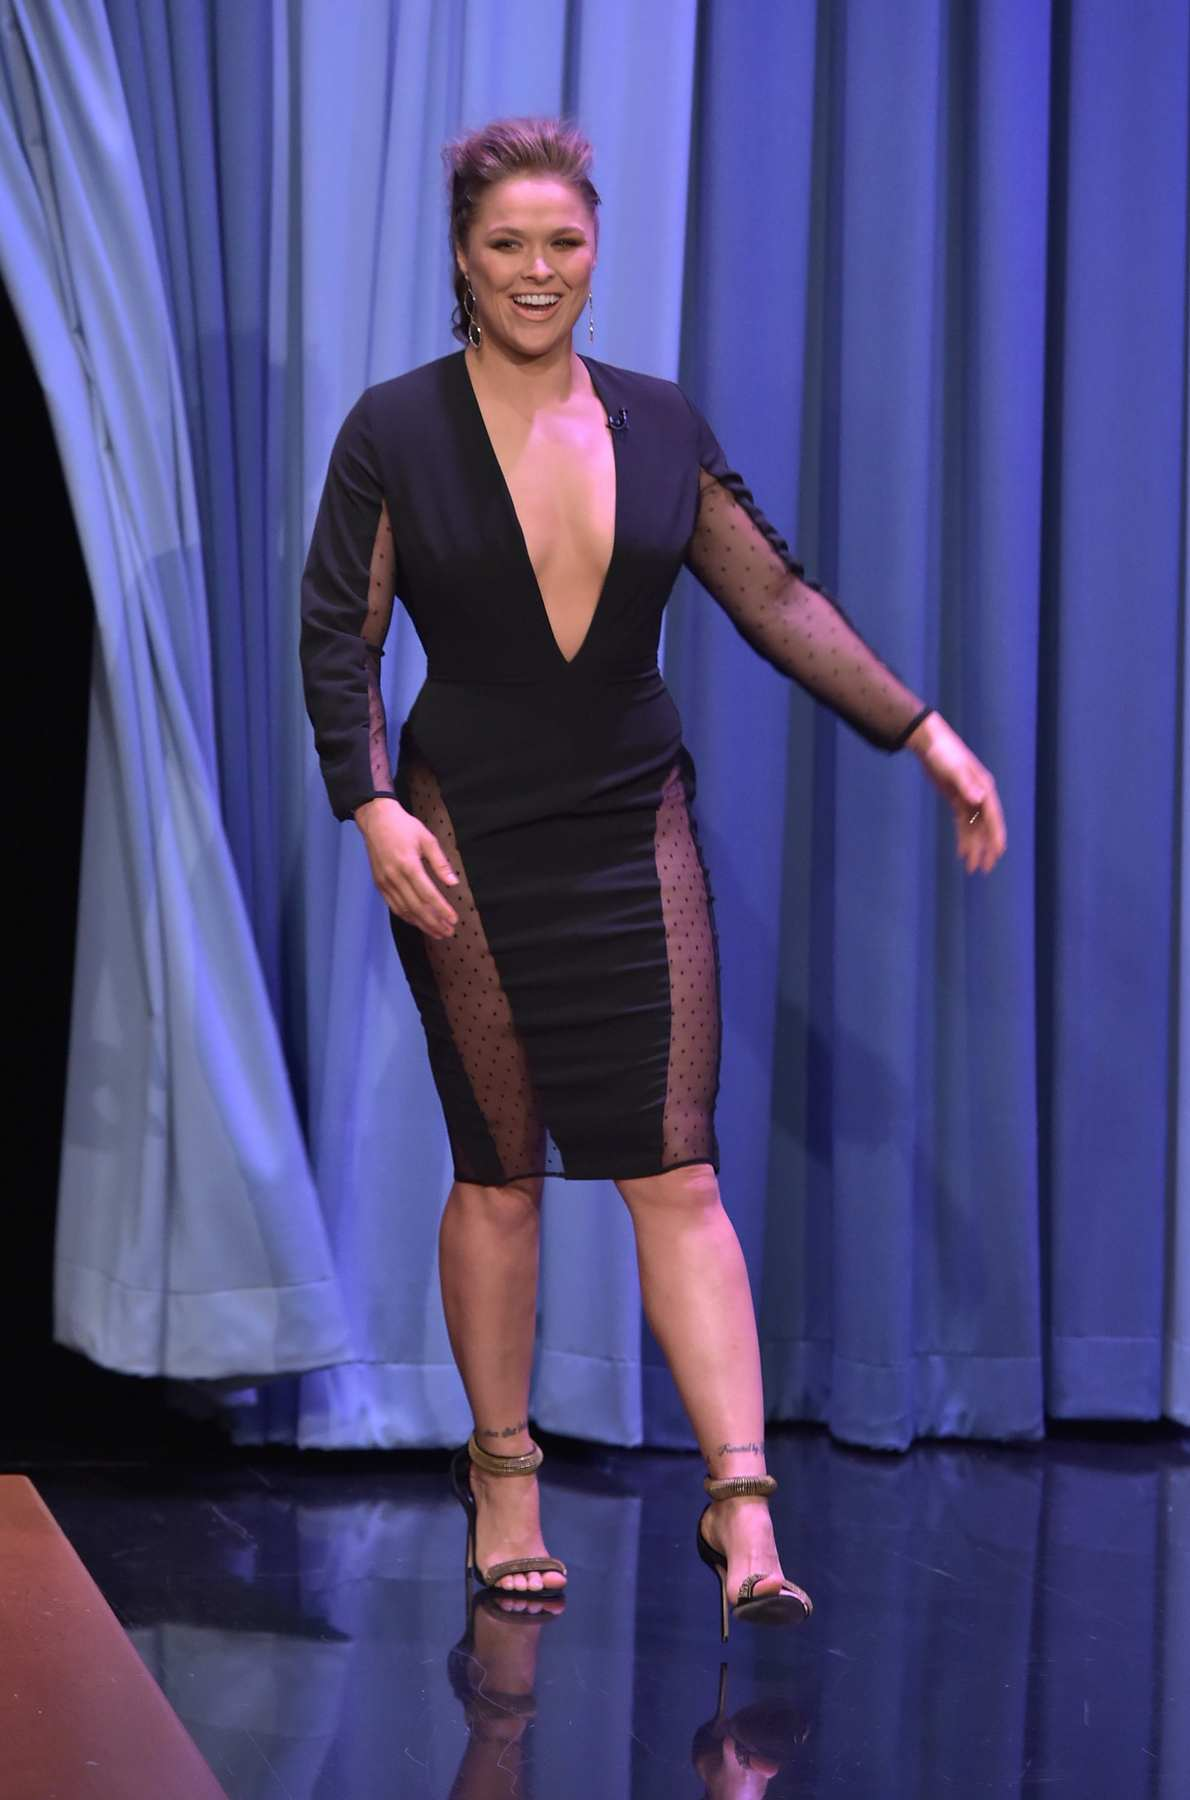 Ronda Rousey Show Cleavage at Jimmy Fallon Show-1